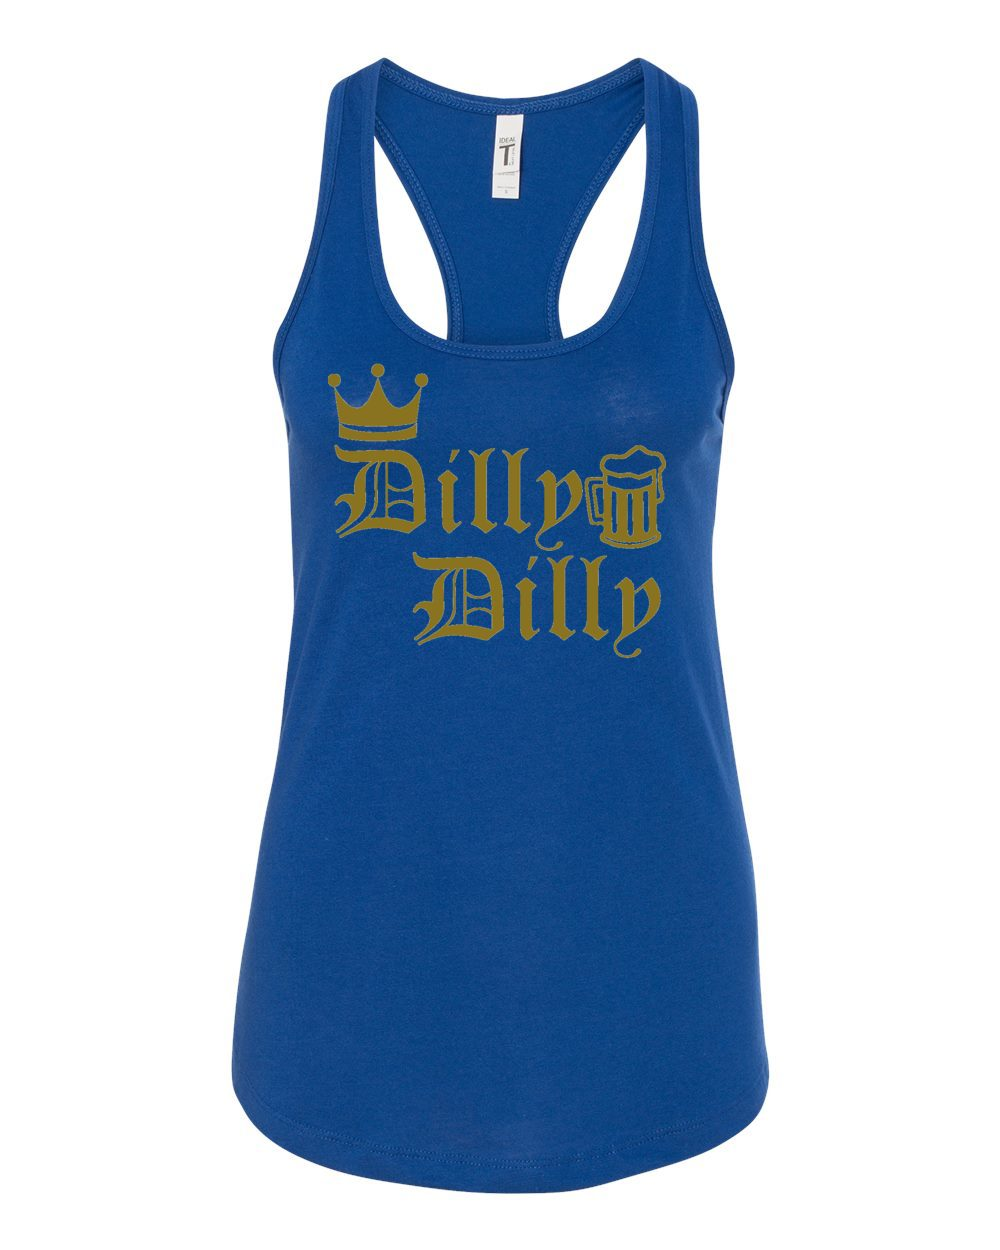 2060517ec228a Dilly Dilly St Patricks Day Womens Jersey Racerback Humor Tank Top ...